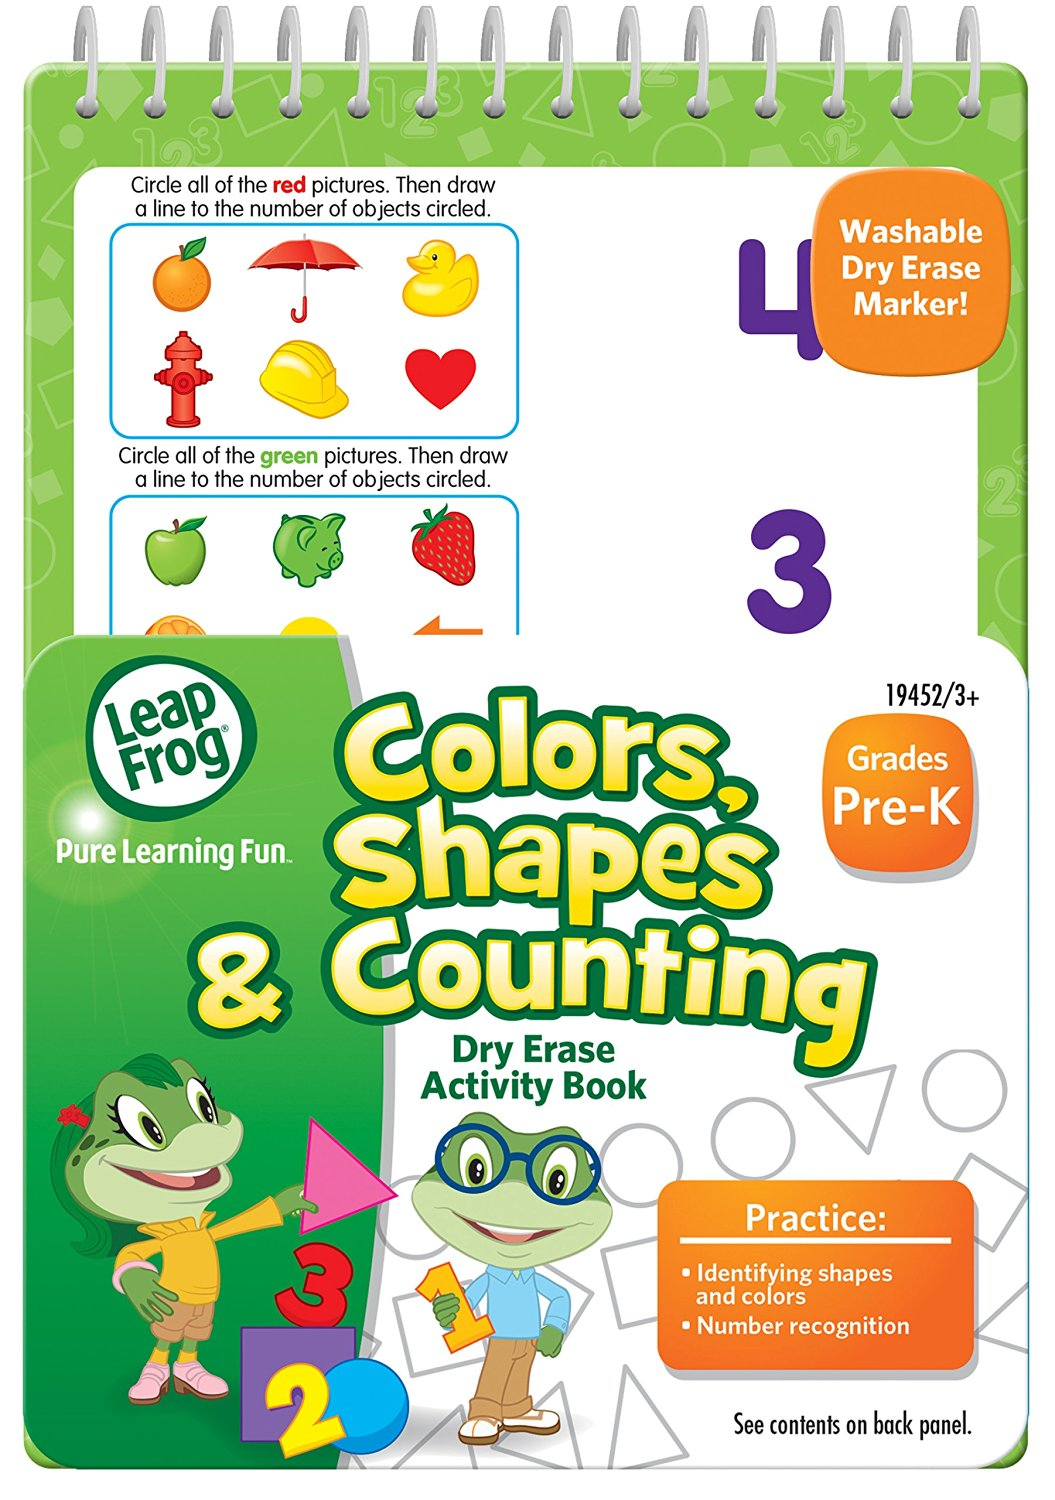 Buy LeapFrog Colors, Shapes and Counting Dry Erase Activity Book for ...